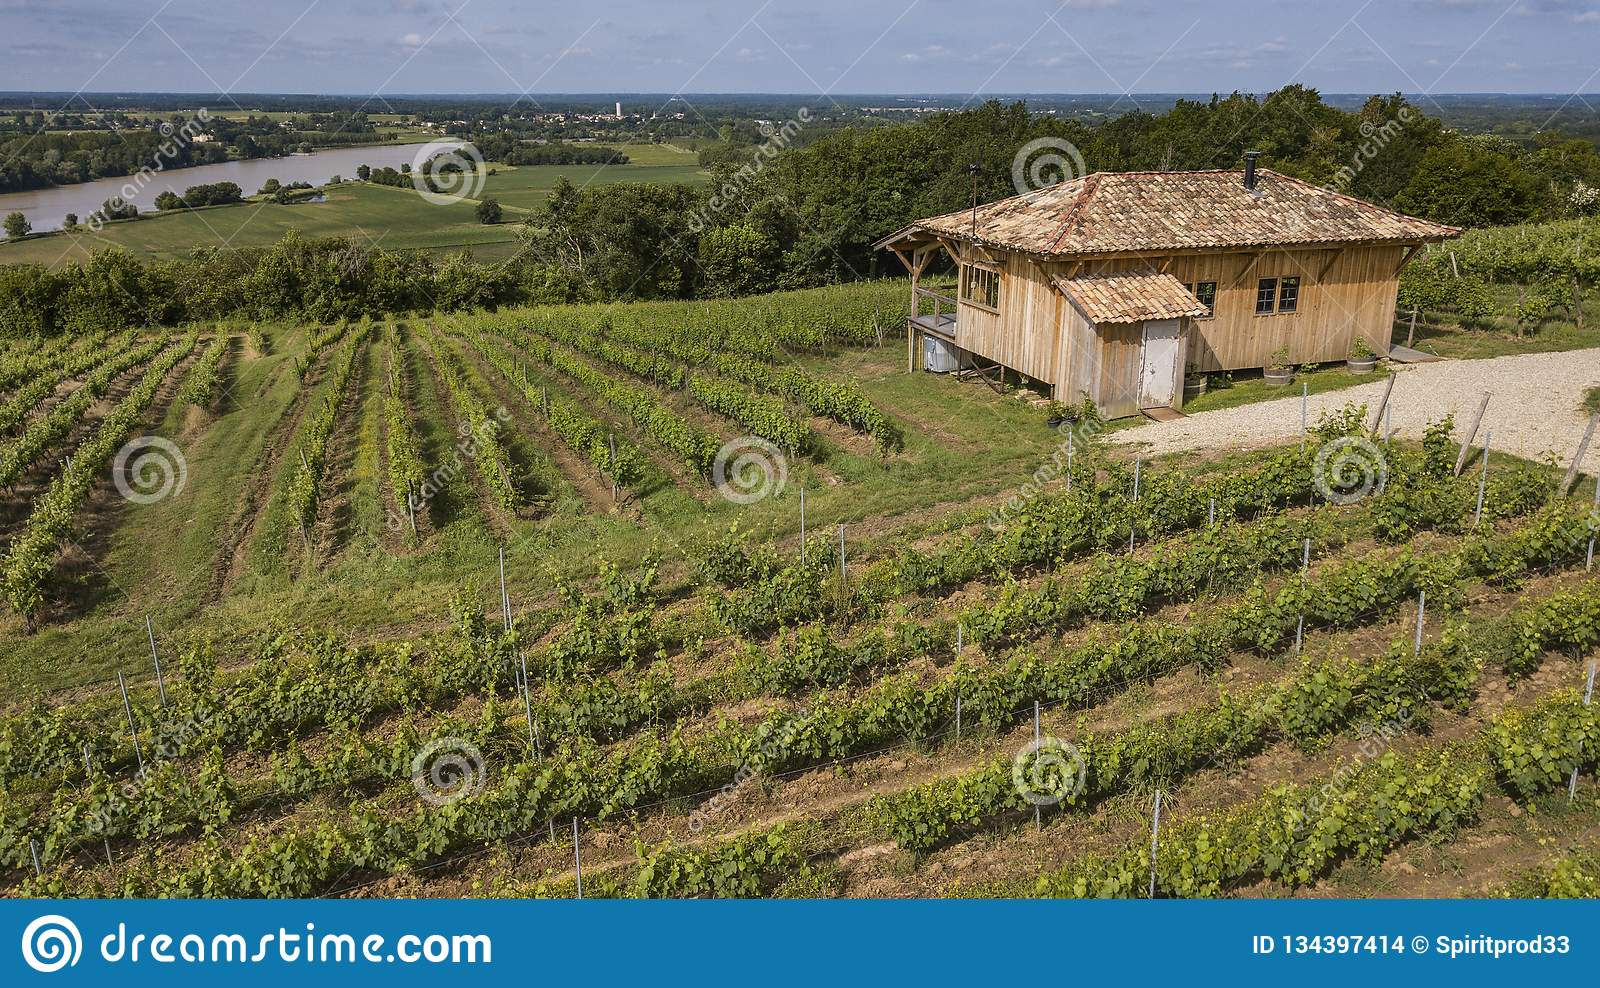 Sunny scenery with small hut in a vineyard at late summer time